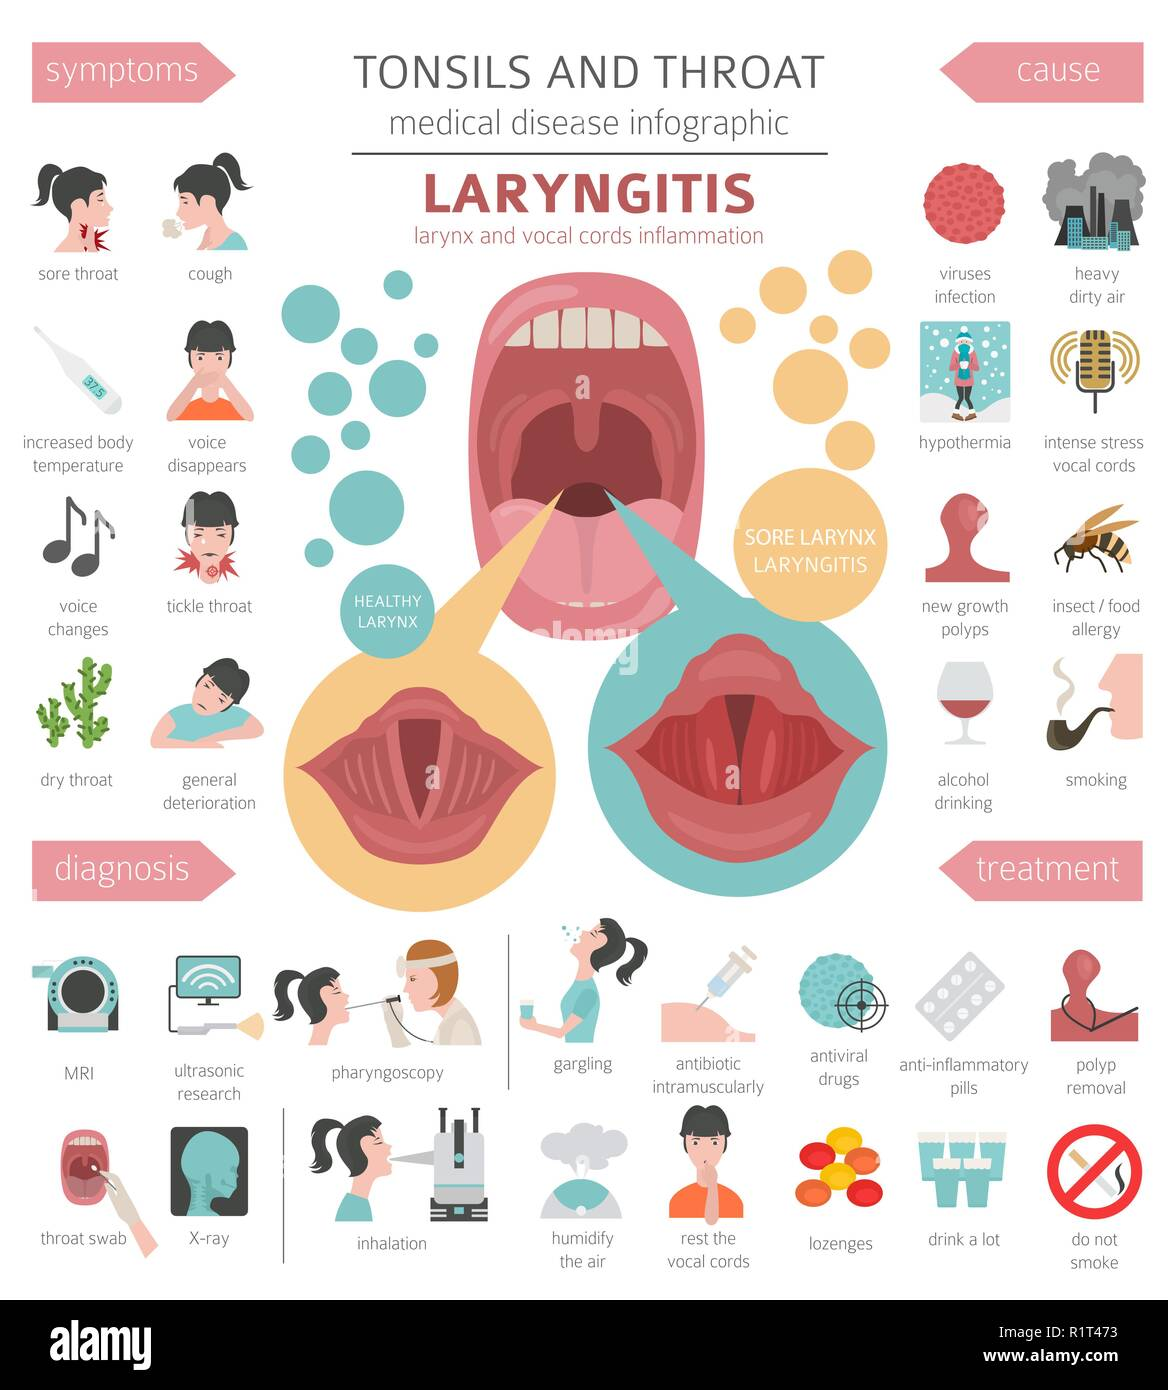 Tonsils and throat diseases. Laryngitis symptoms, treatment icon set. Medical infographic design. Vector illustration - Stock Vector